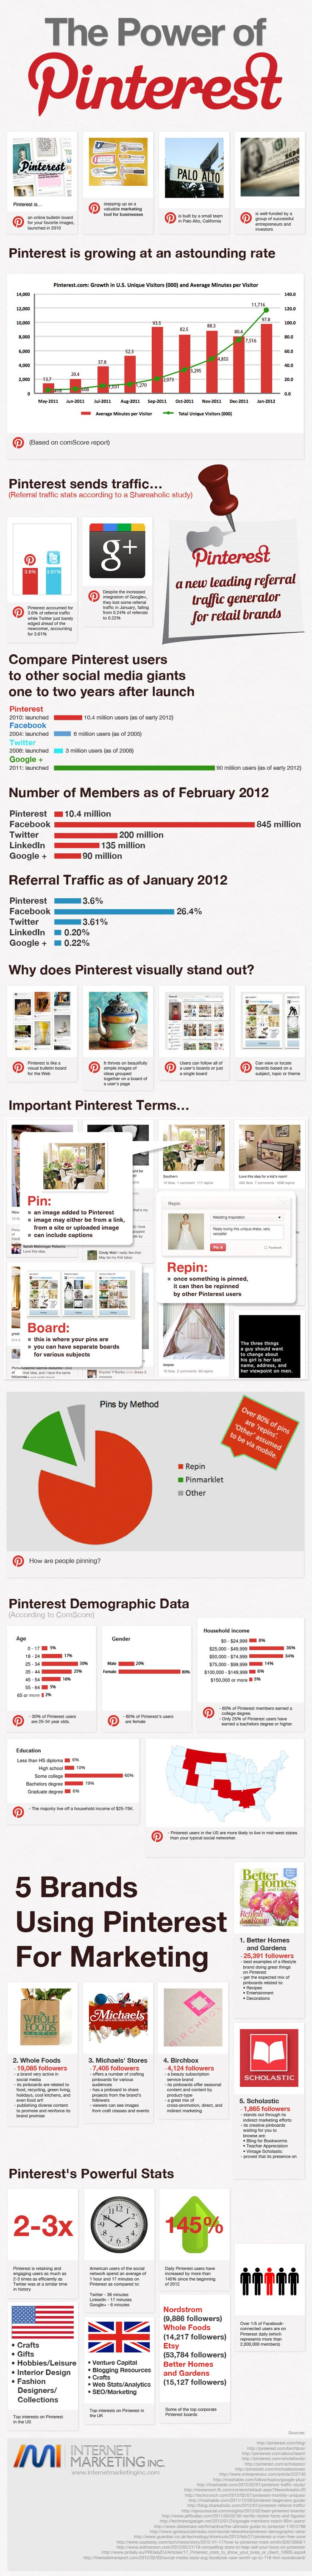 #IntDesignerChat May 8 Topic: Pinterest And Blogging ~ Is This The New Designer'sPR?